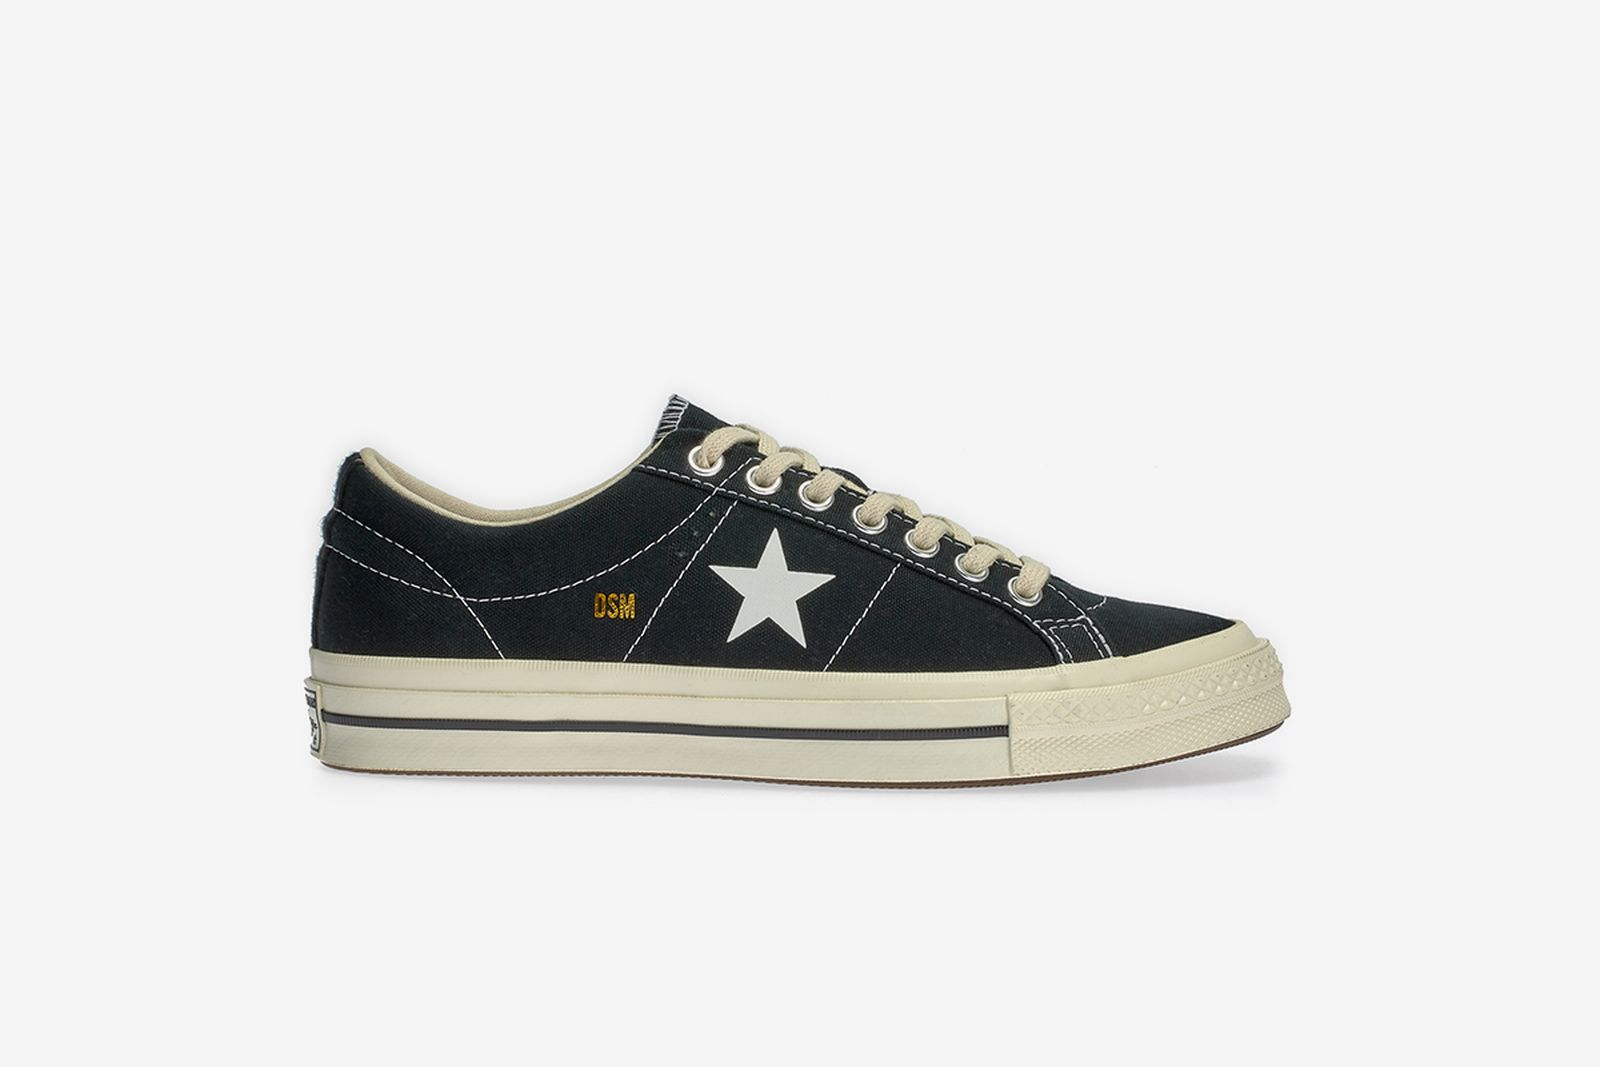 dover street market singapore one year anniversary Converse Emotionally Unavailable Nike